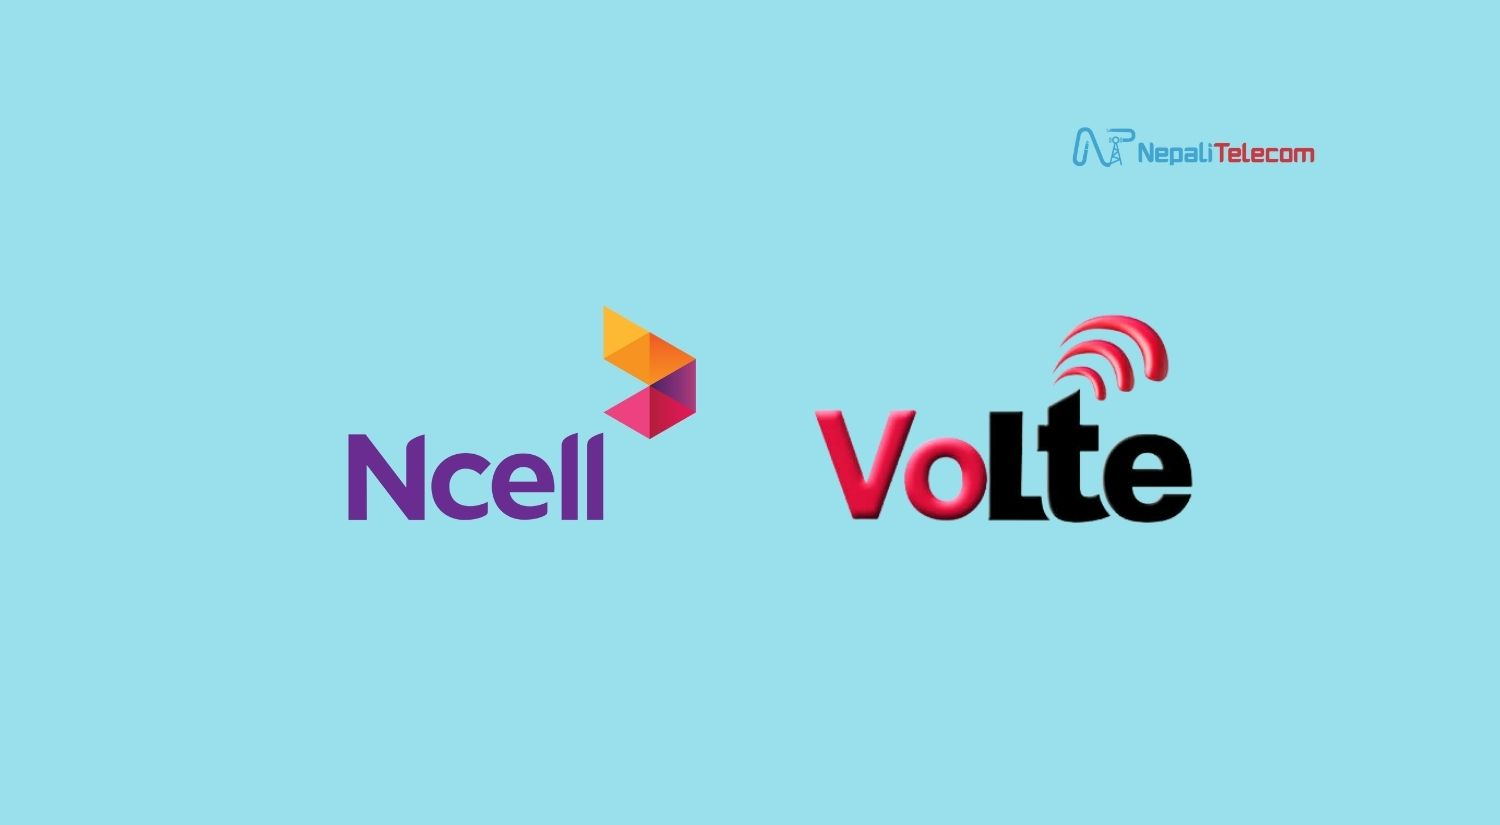 Ncell Volte